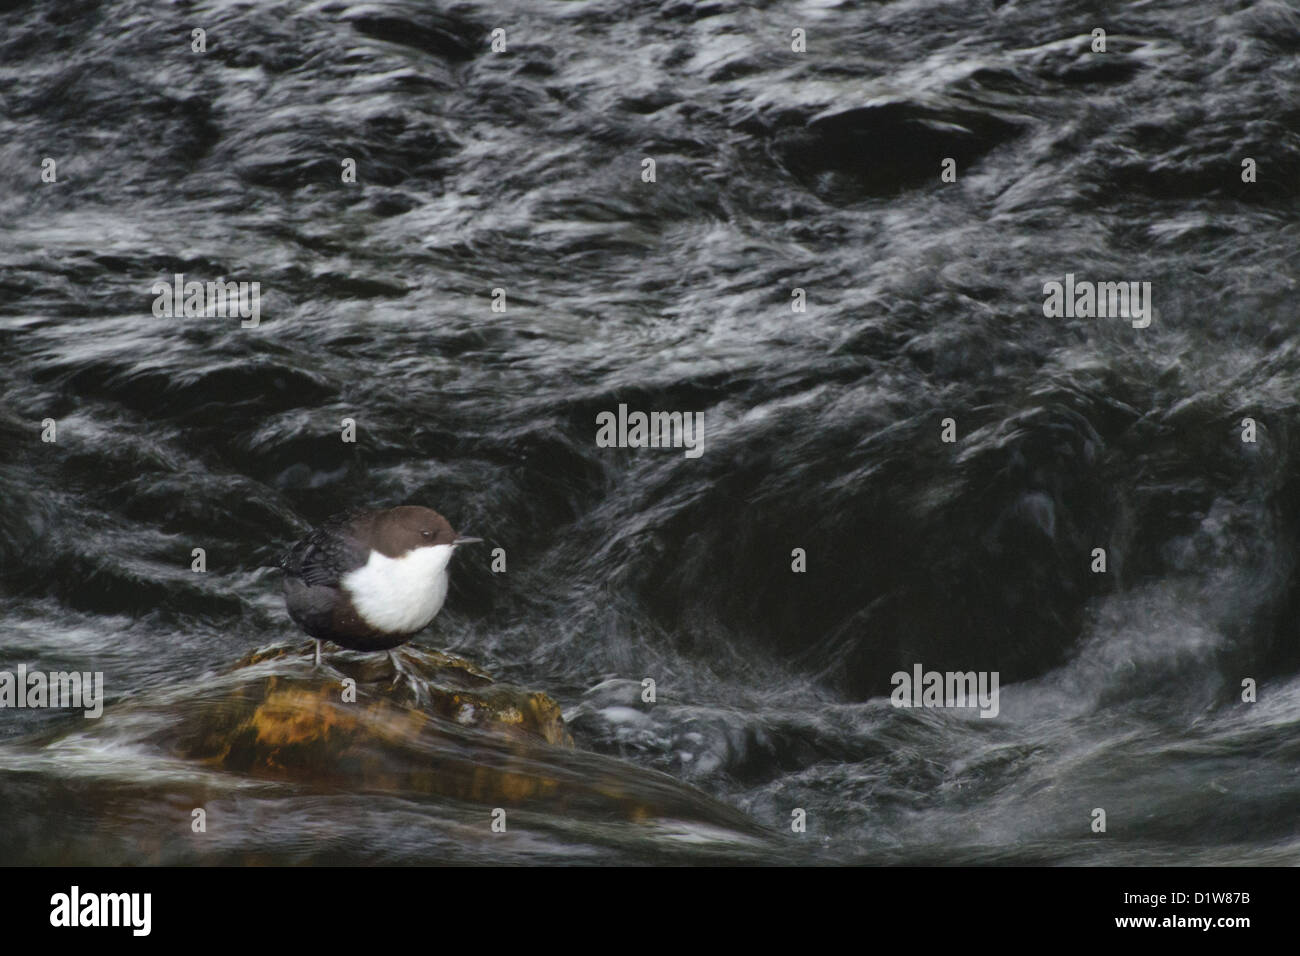 Black bellied dipper, thetford - Stock Image